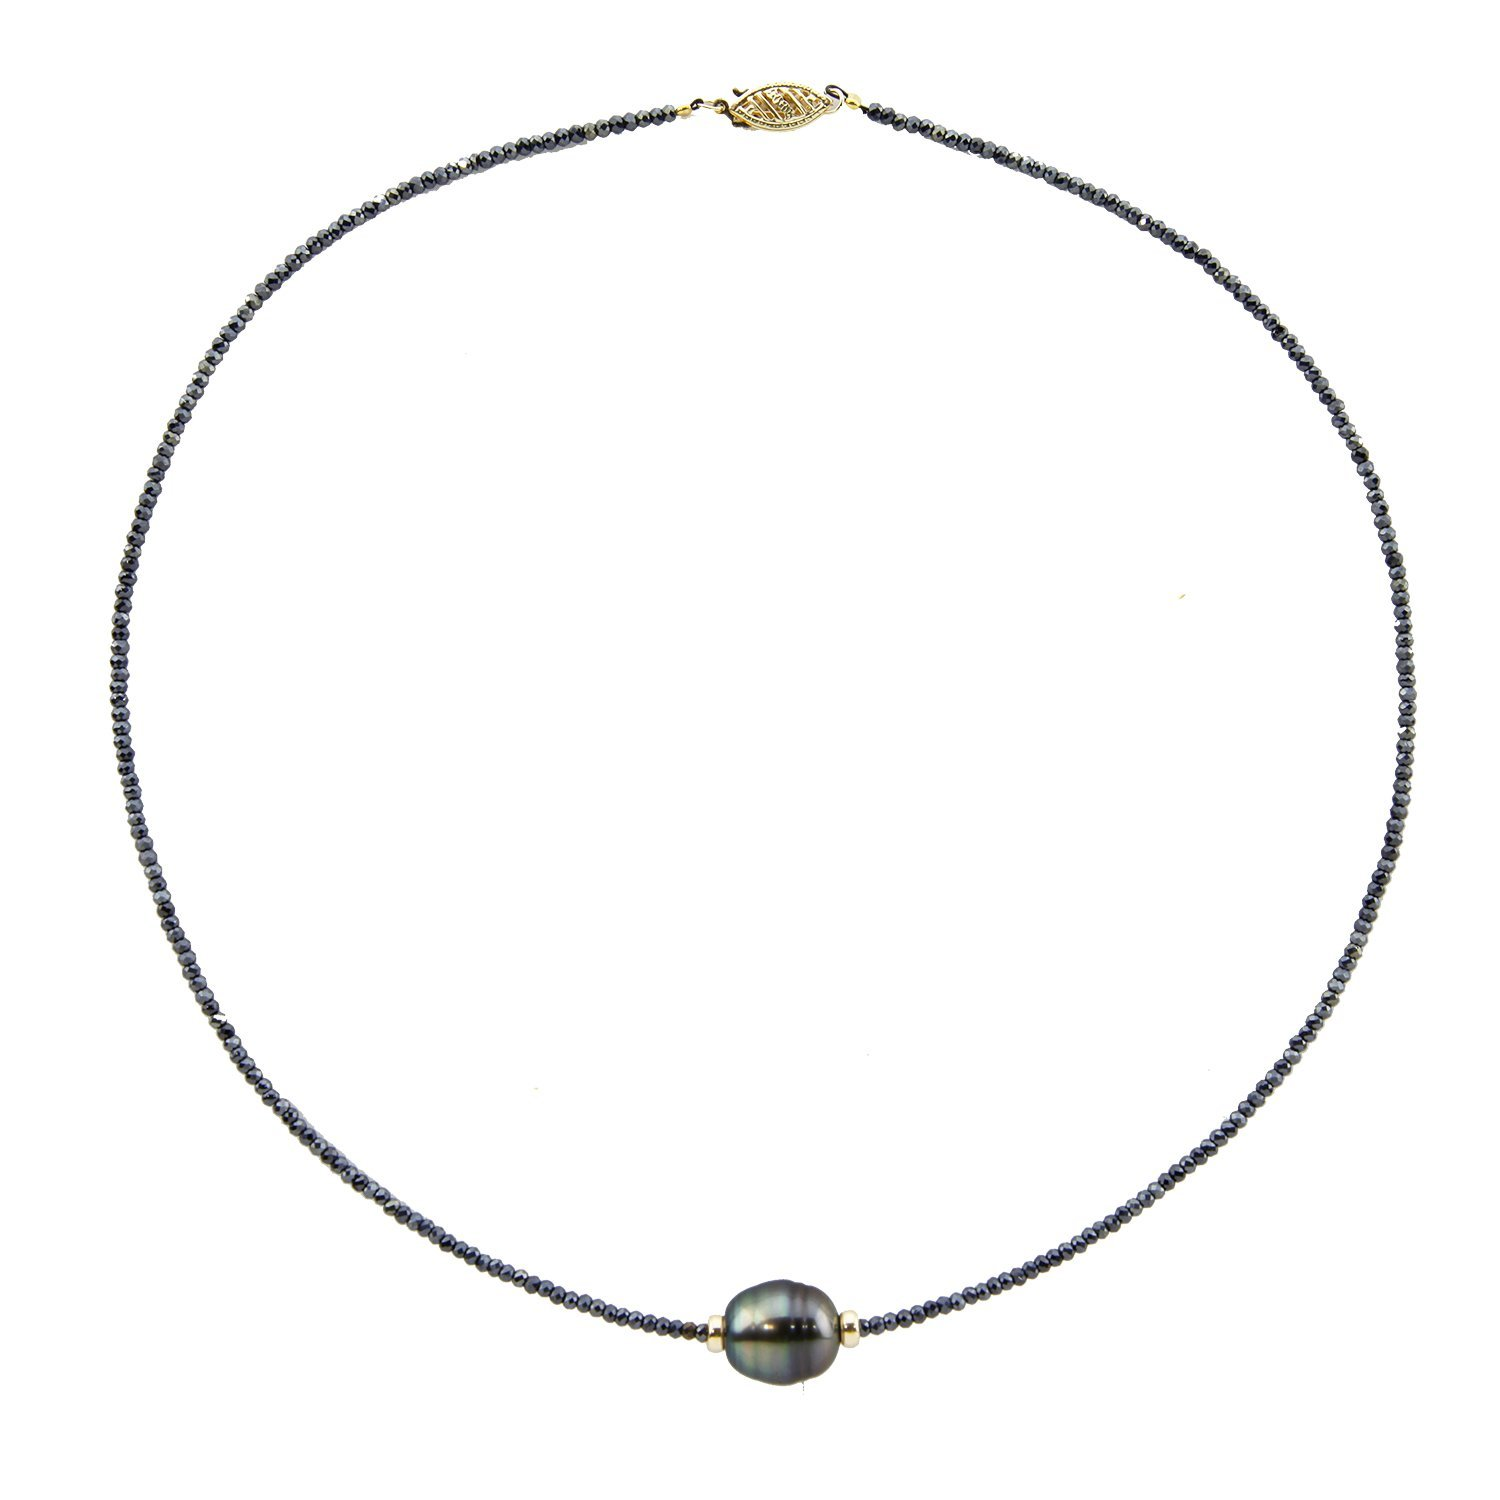 14K Yellow Gold 11-12mm High Luster Circle-Drop-Baroque Tahitian Cultured Pearl with Black Spinel Necklace 18'' Length A style by Akwaya